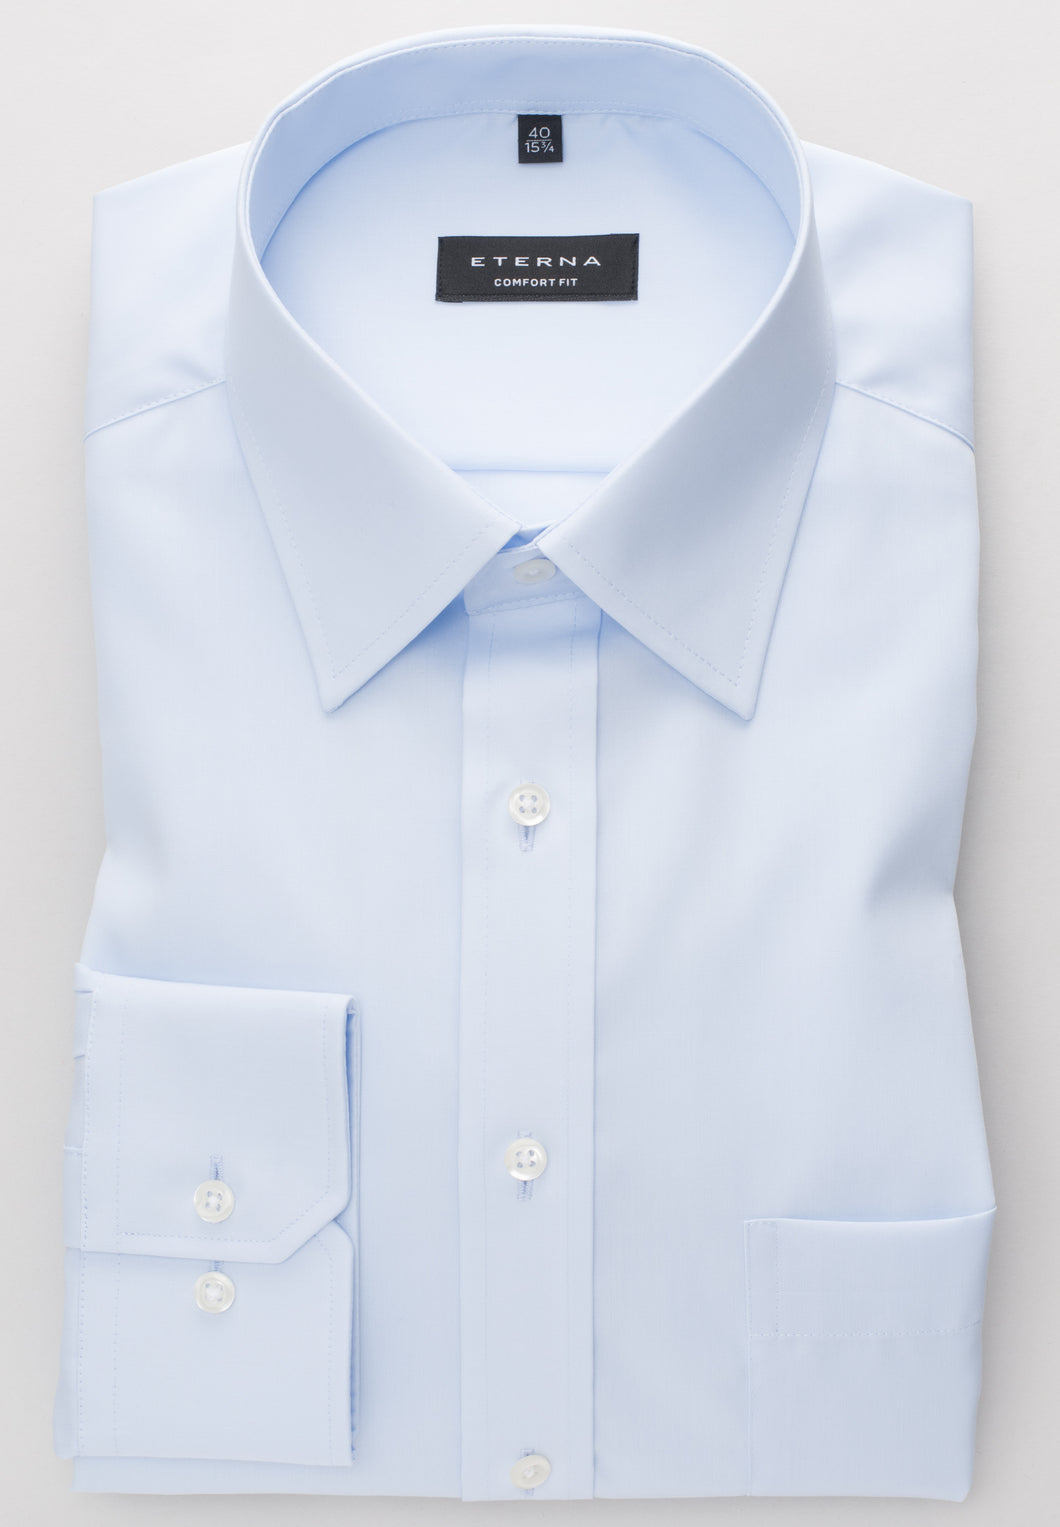 Eterna Comfort Fit Shirt Blue 1100/10